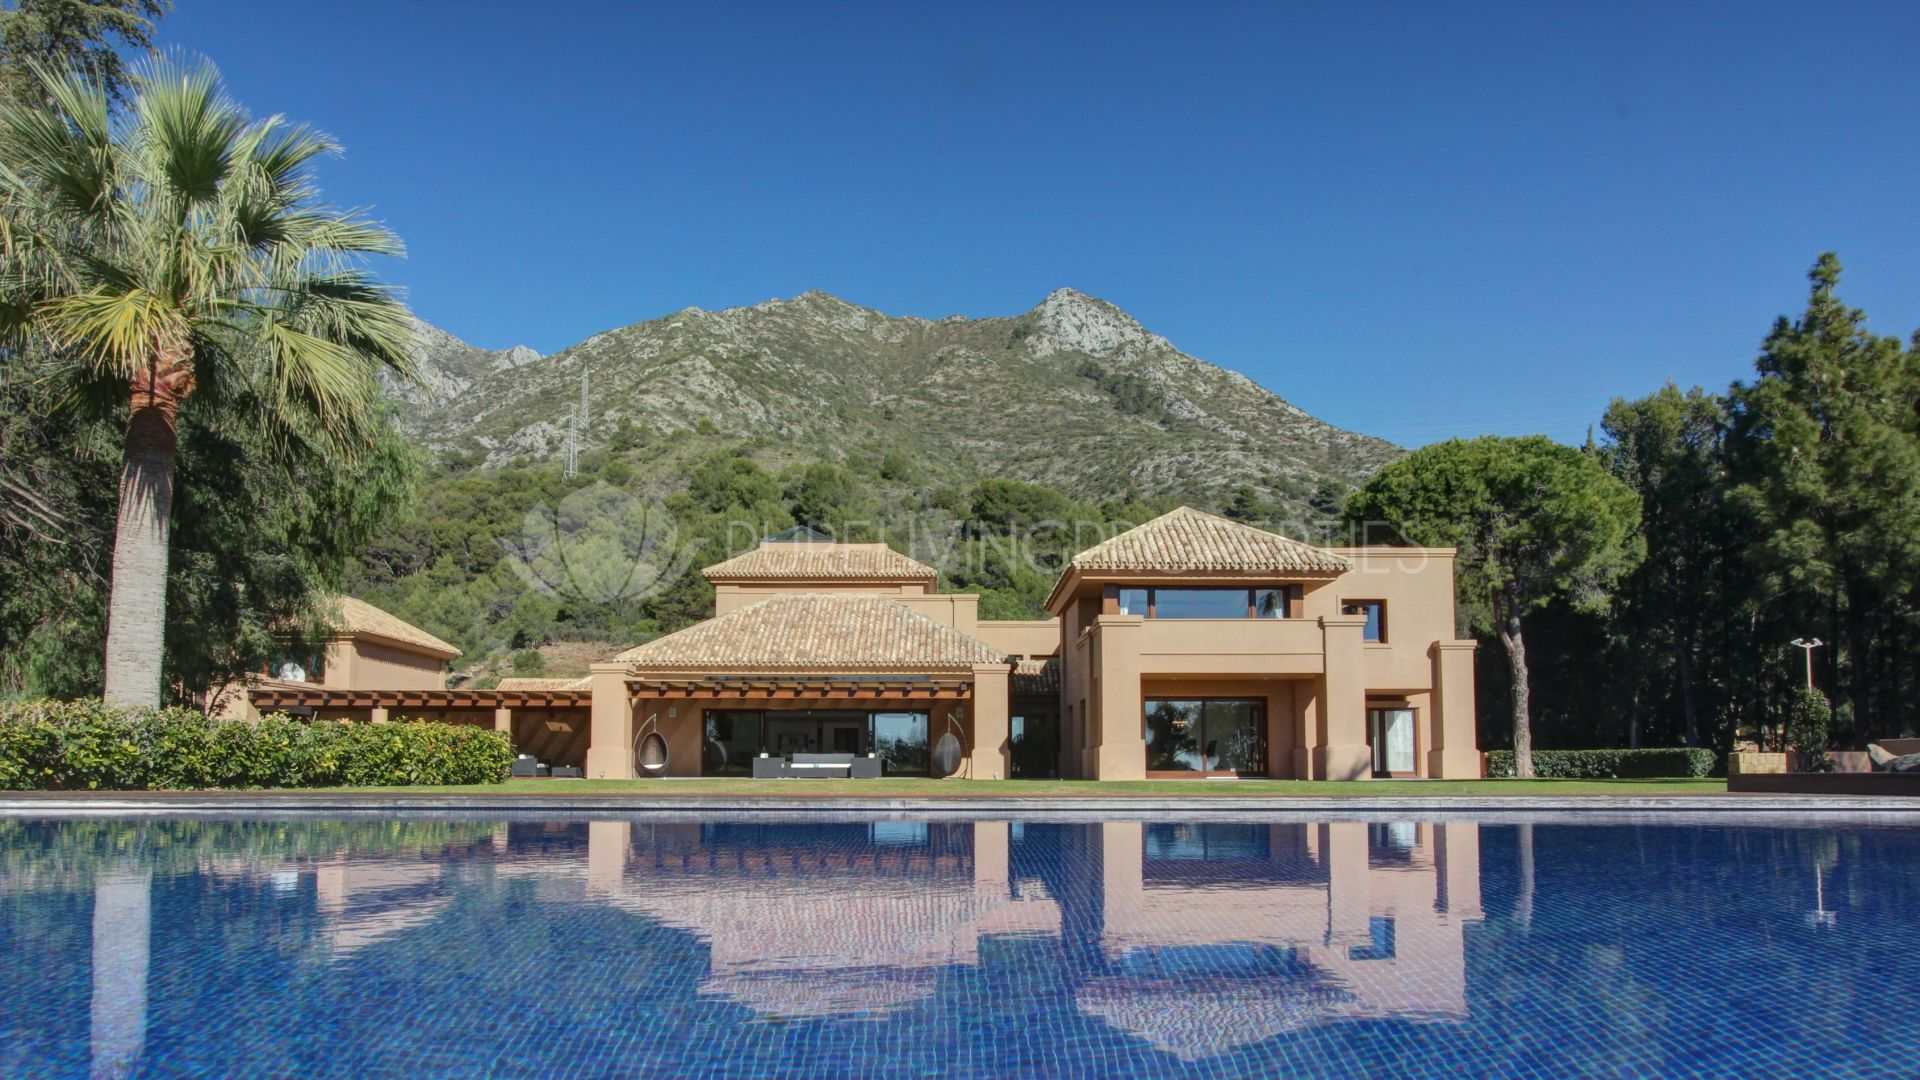 Astonishing luxury villa design by Marco Sanz in Cascada de Camojan